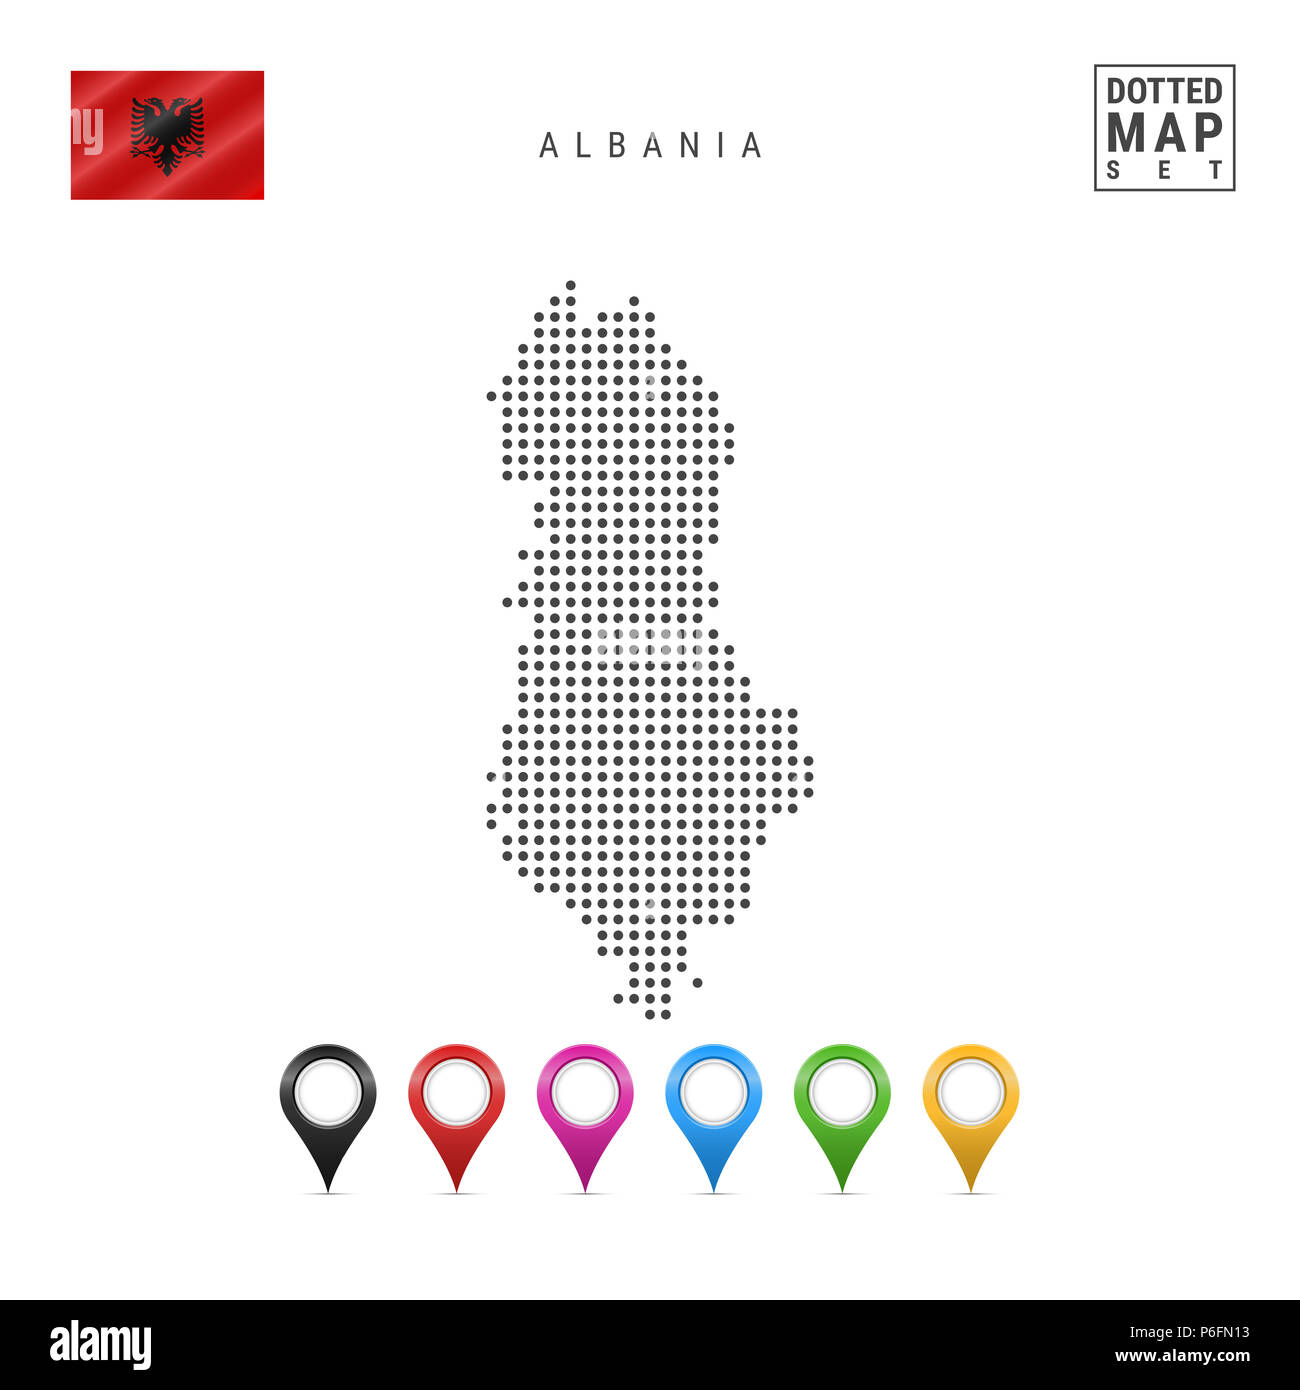 Dotted Map of Albania. Simple Silhouette of Albania. The National Flag of Albania. Set of Multicolored Map Markers. Illustration Isolated on White Bac - Stock Image